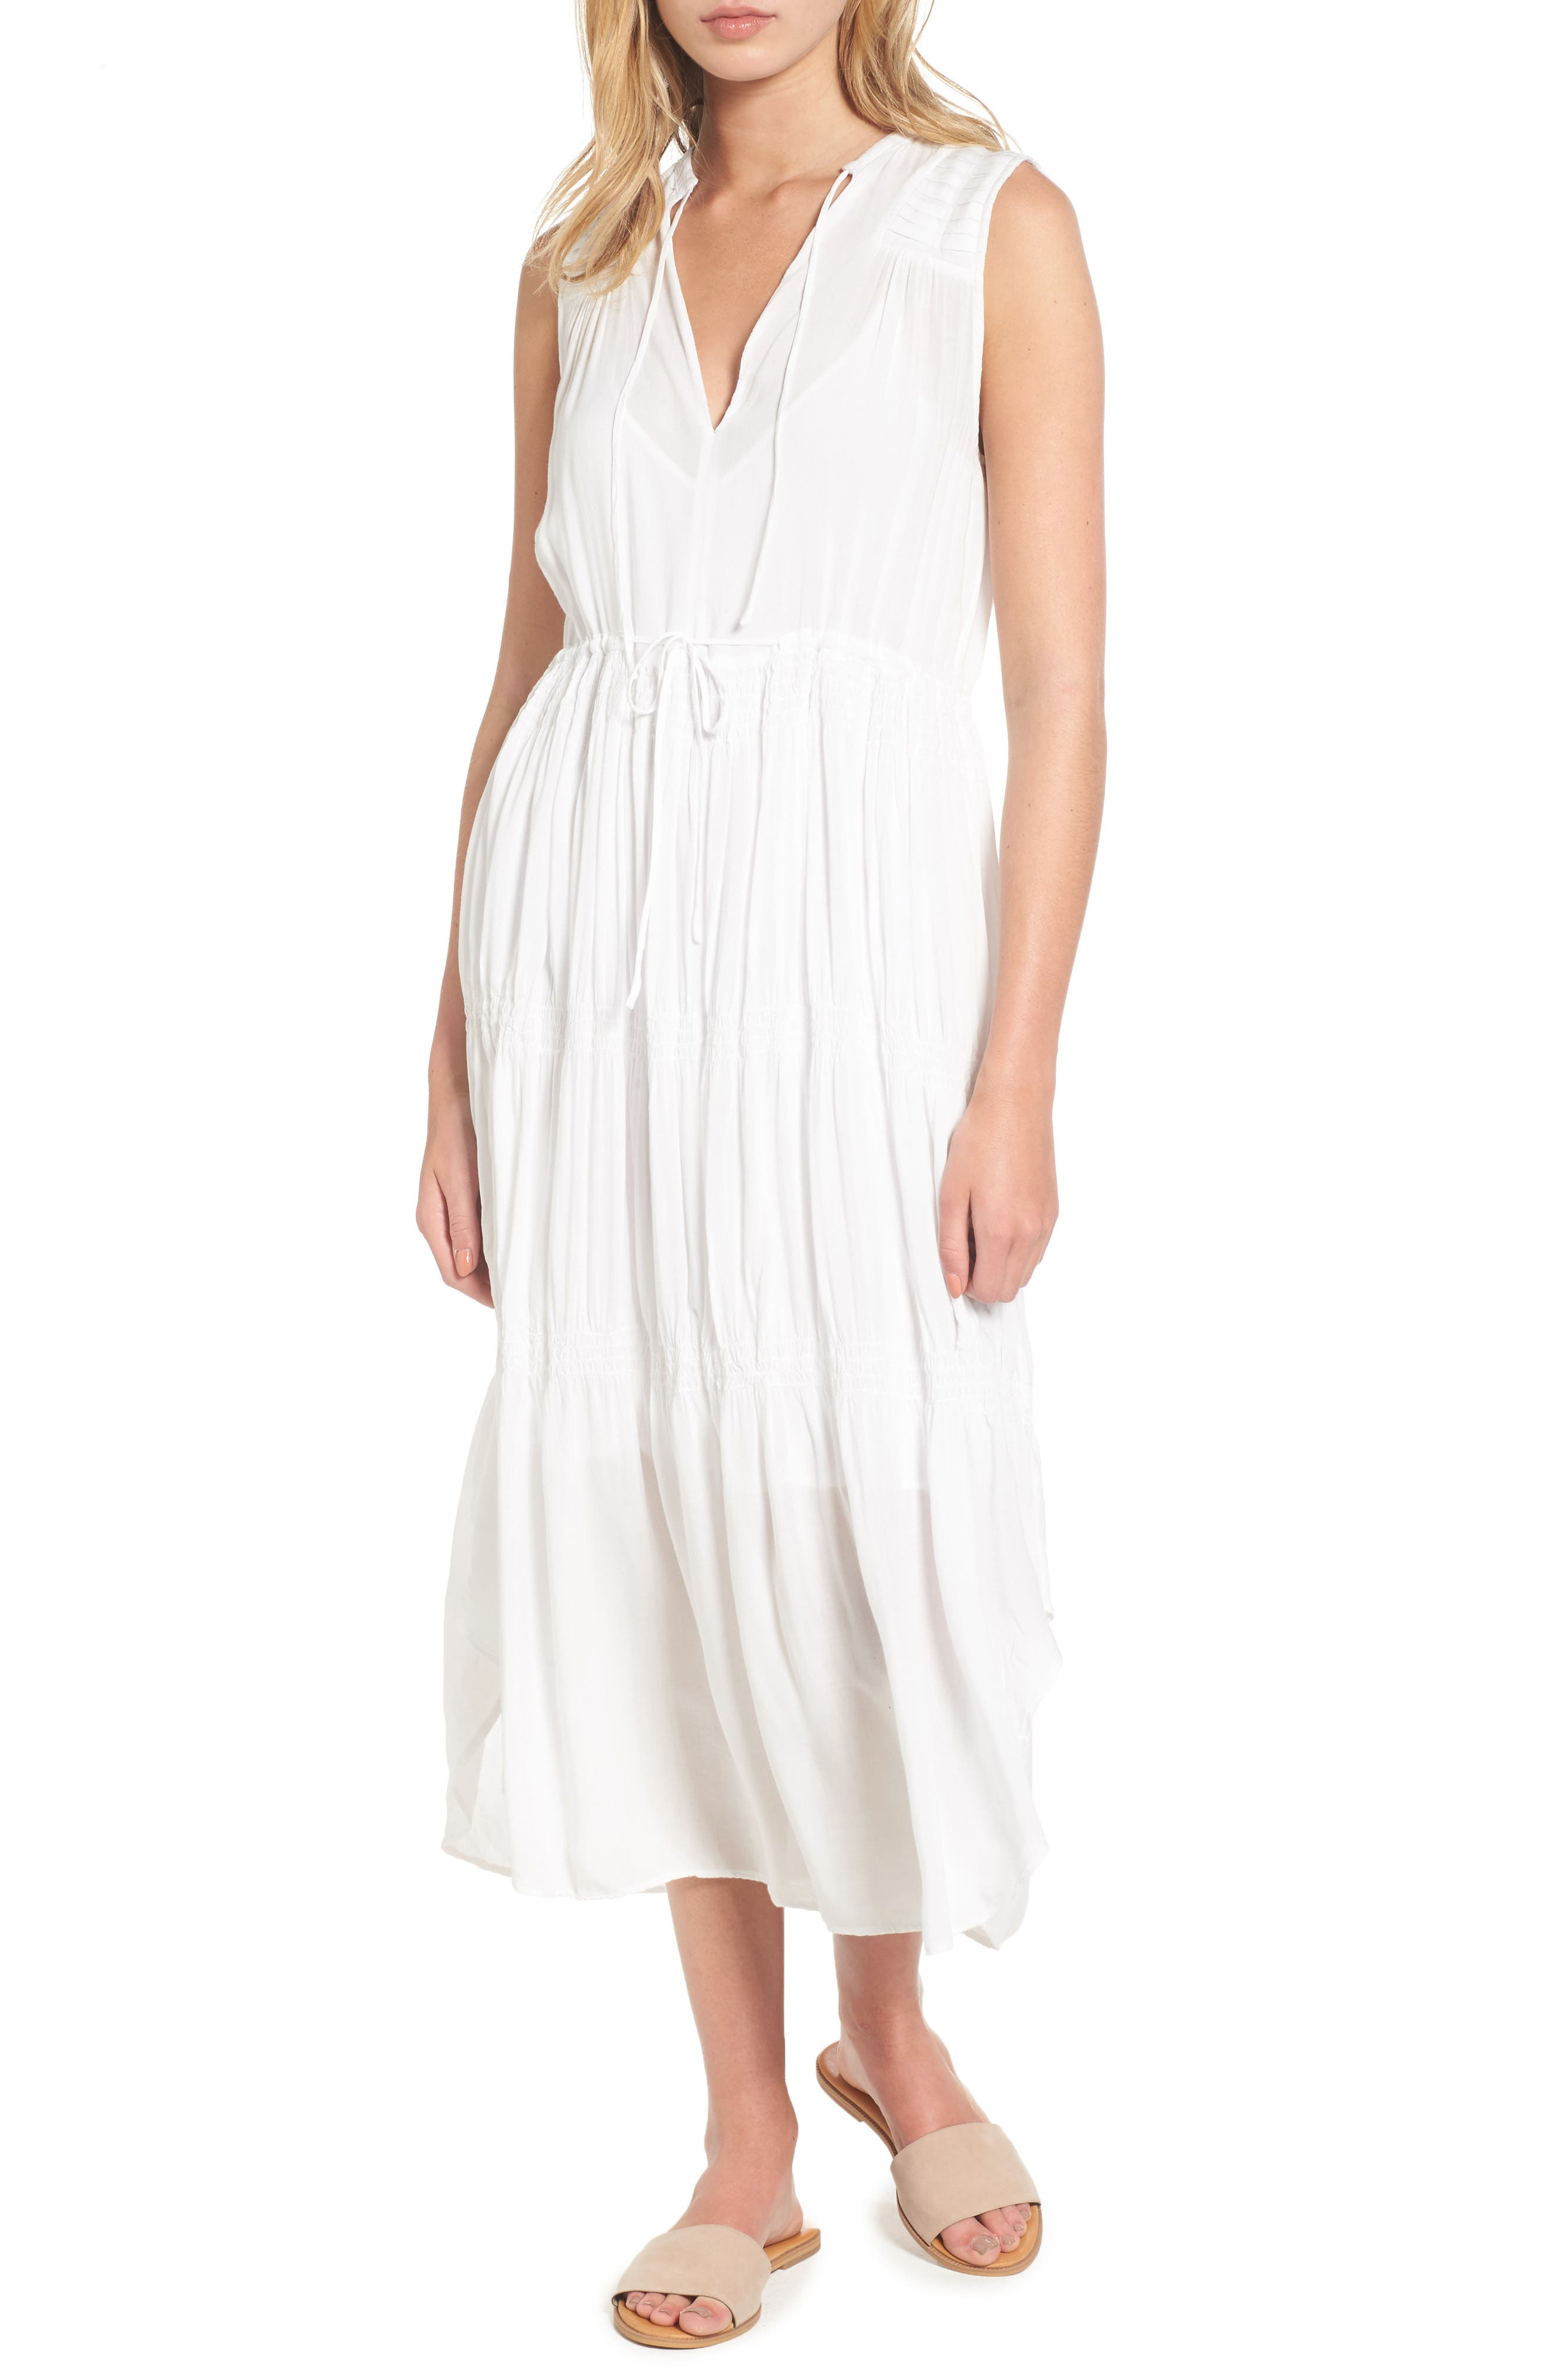 James Perse Pleated A-Line Dress